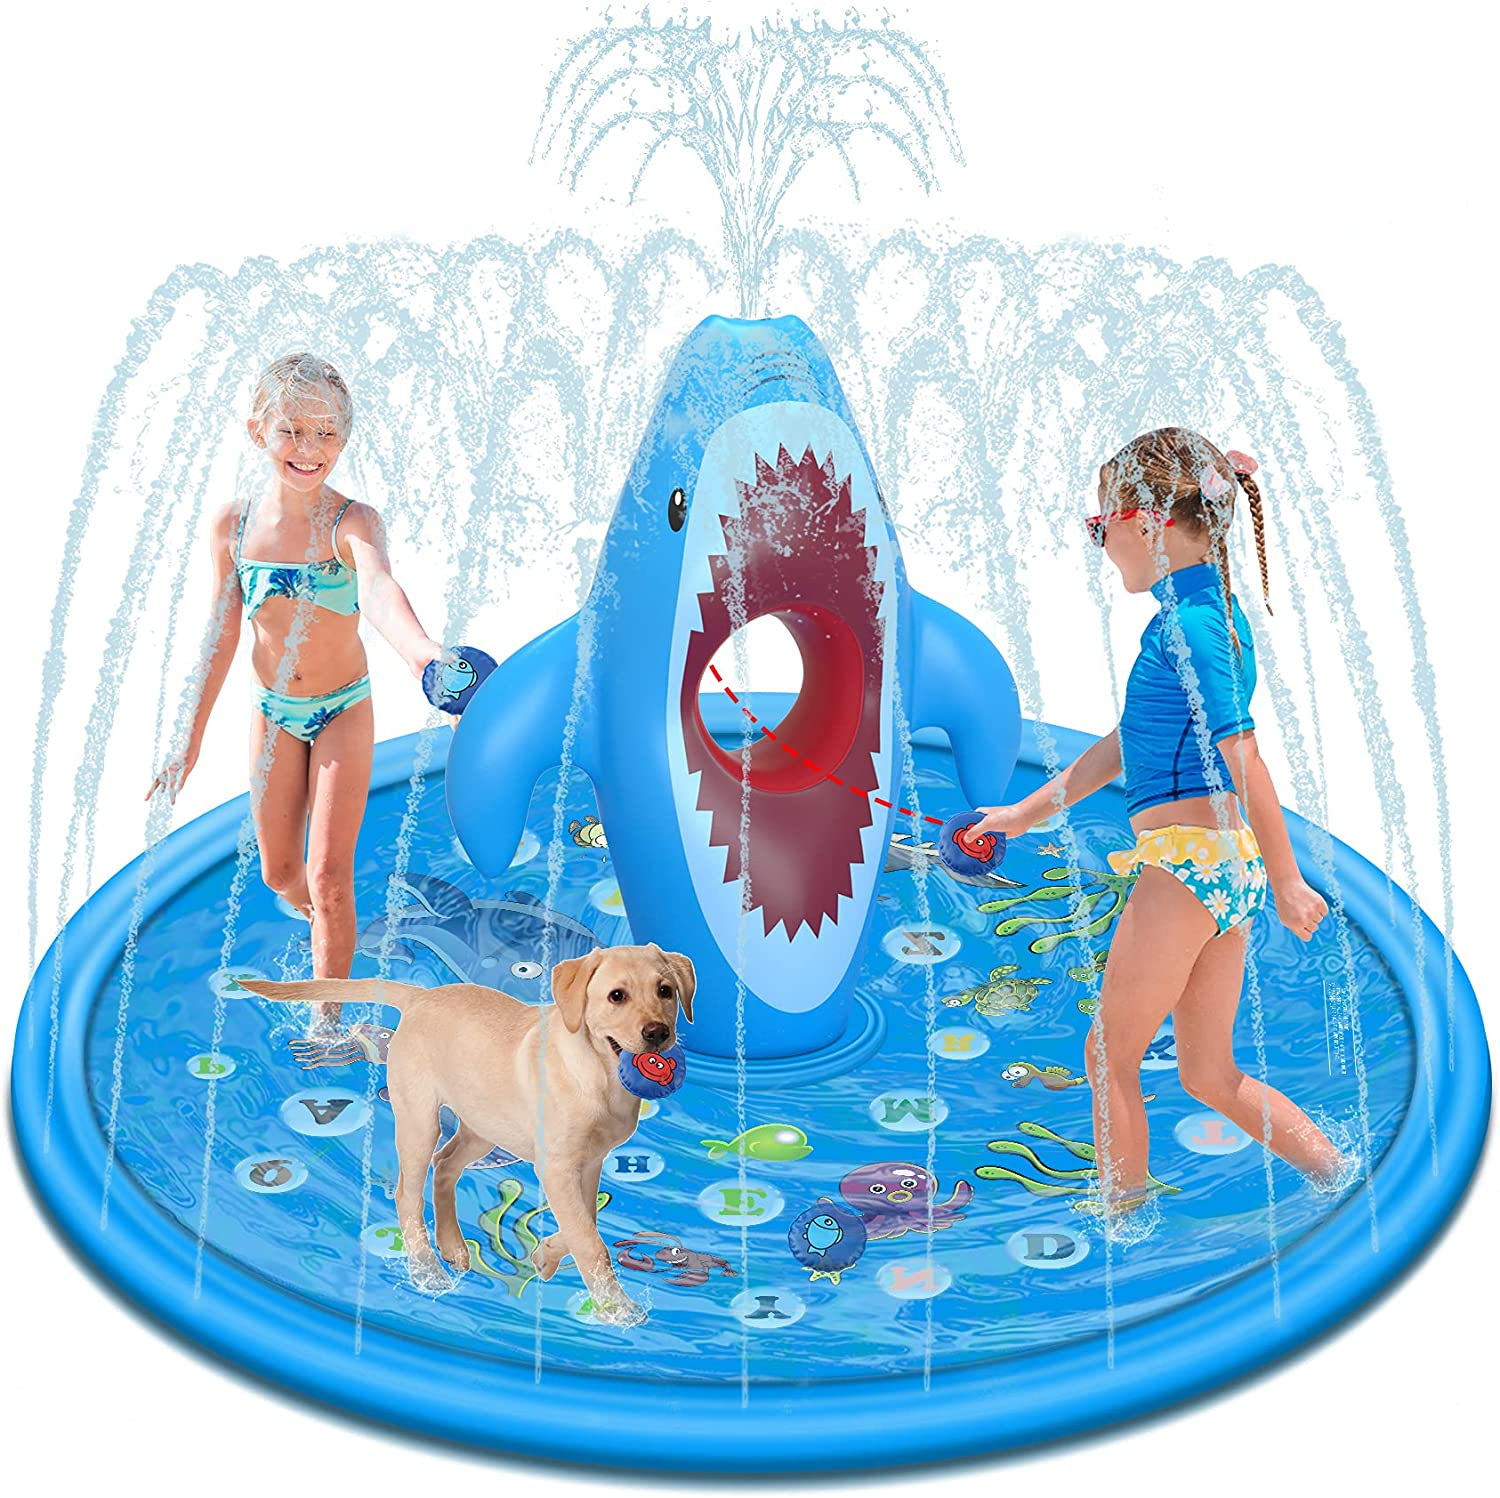 """Tobeape Splash Pad Sprinkler for Kids, Outdoor Water Play Mat with Sandbags Fun Game, """"from A to Z"""" Wading Pool for Learning, Inflatable Summer Gifts for Babies Toddlers Boys Girls"""